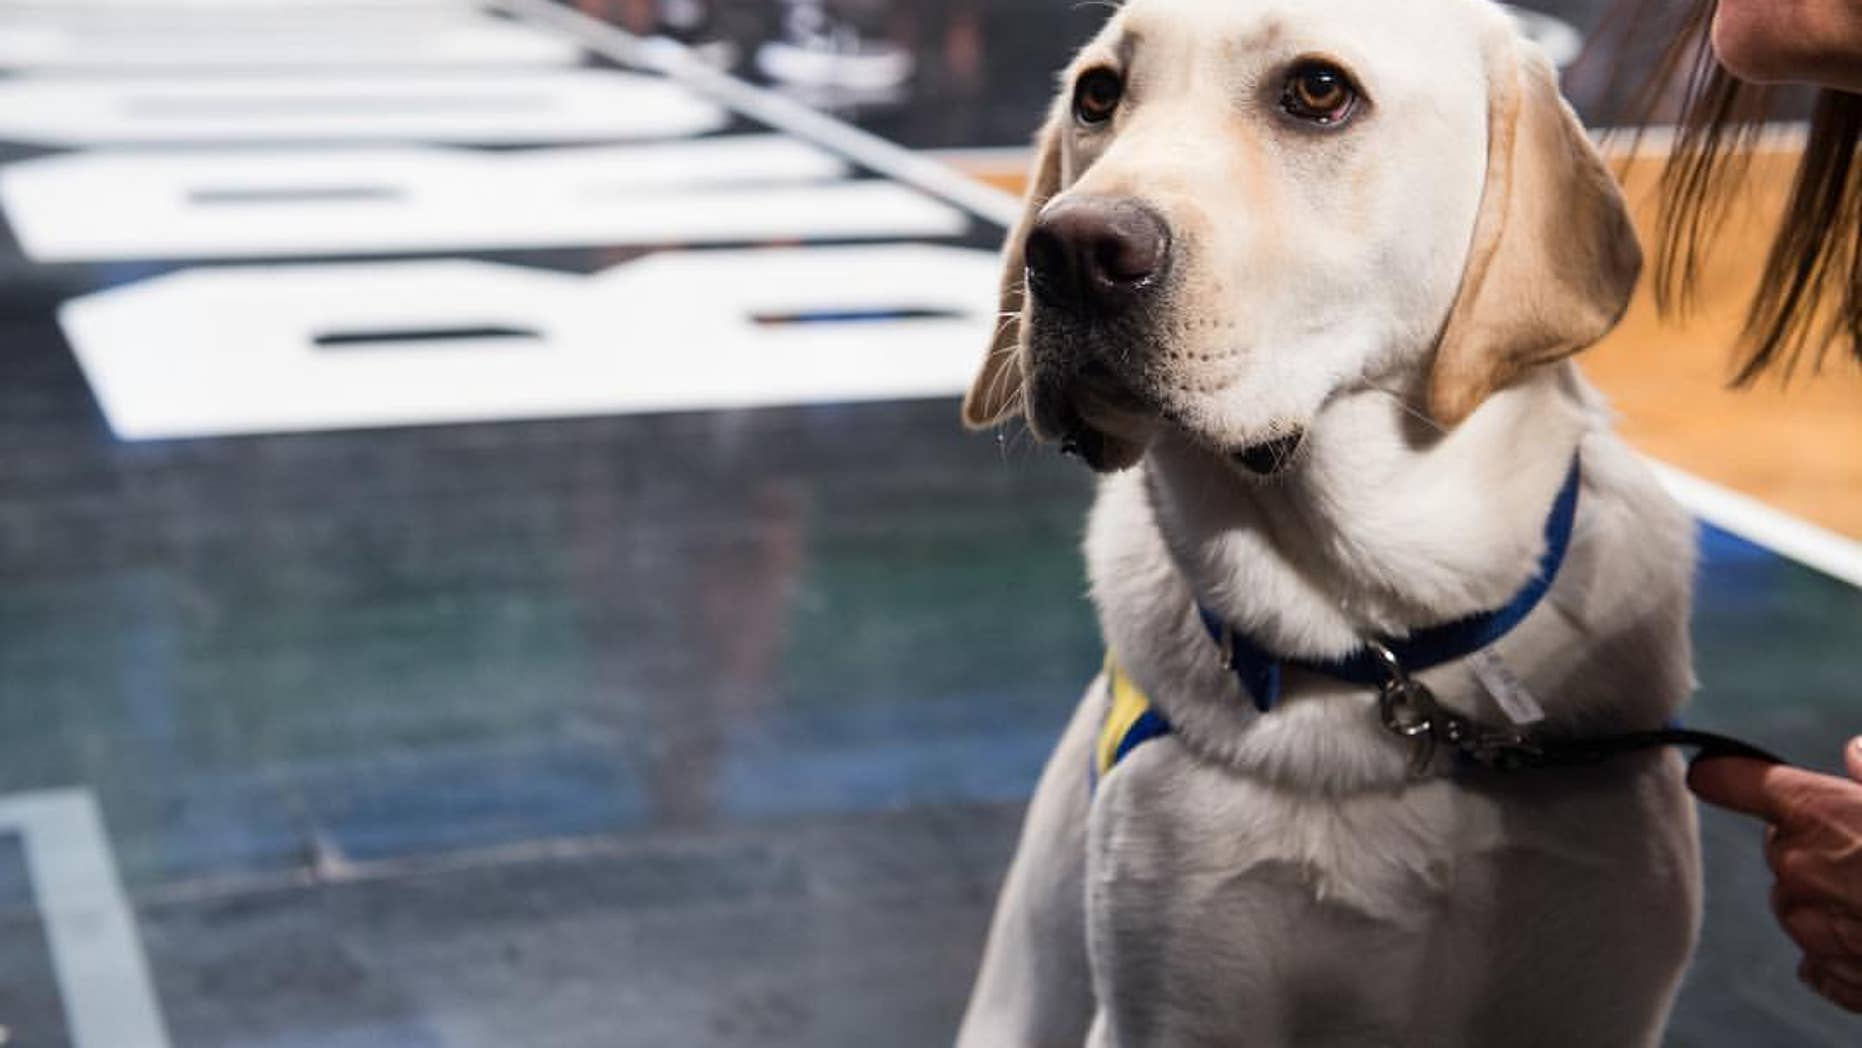 Spike's future partner could be a big sports fan, so it's important for the service-dog-in-training to get used to the crowds and loud atmosphere.